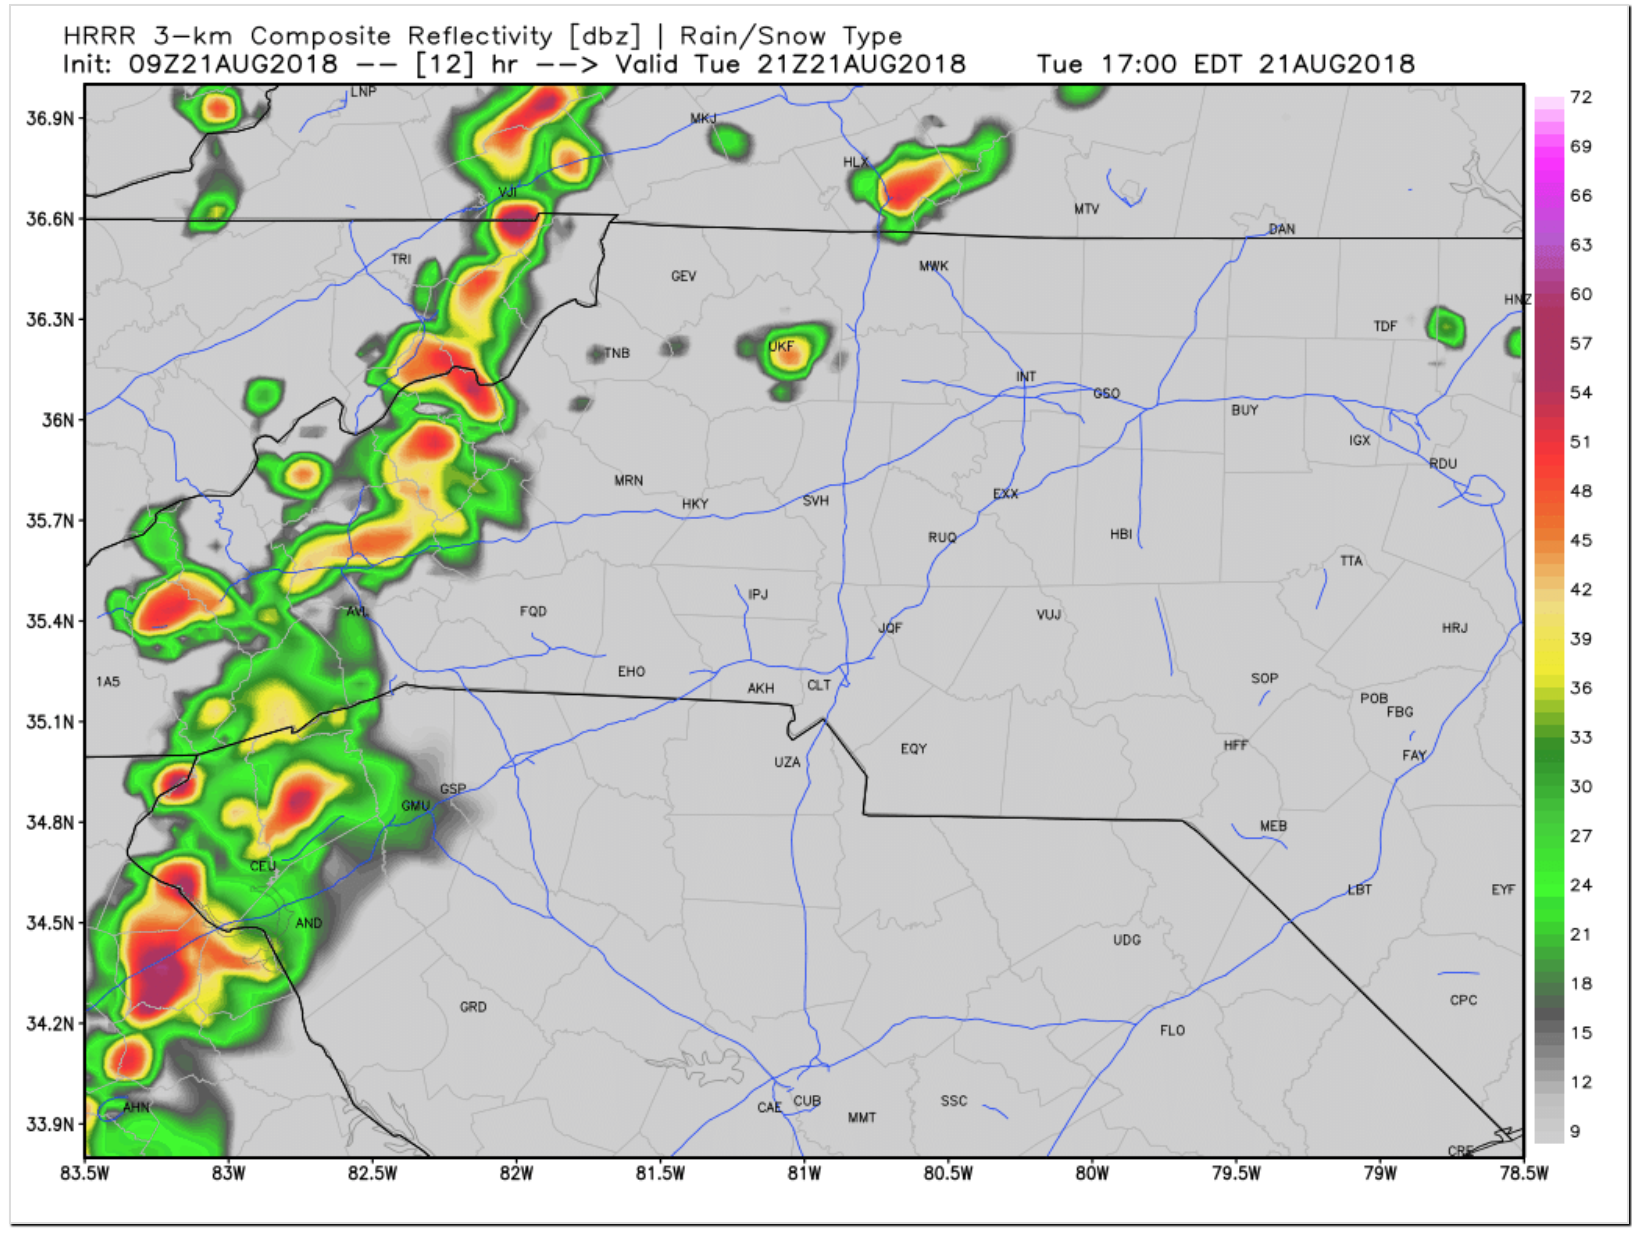 HRRR radar depiction at 5pm EST. You can see a strong line of storms stretching across most of Buncombe co.